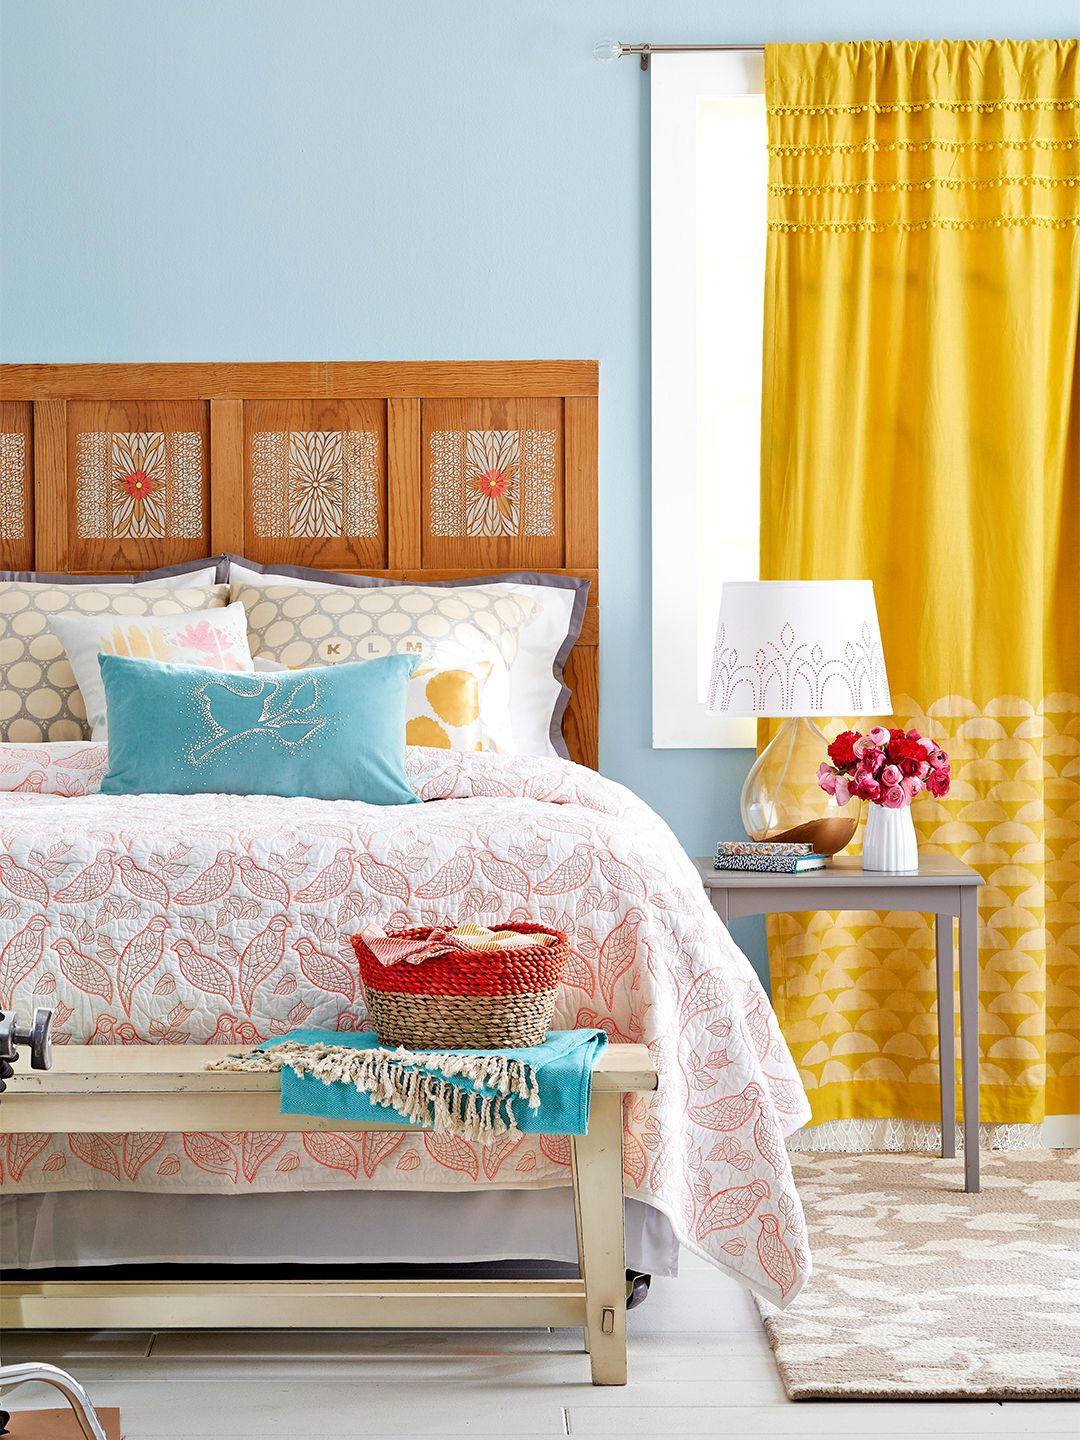 Colorful DIY Bedroom Projects DIY Ideas for Your Home